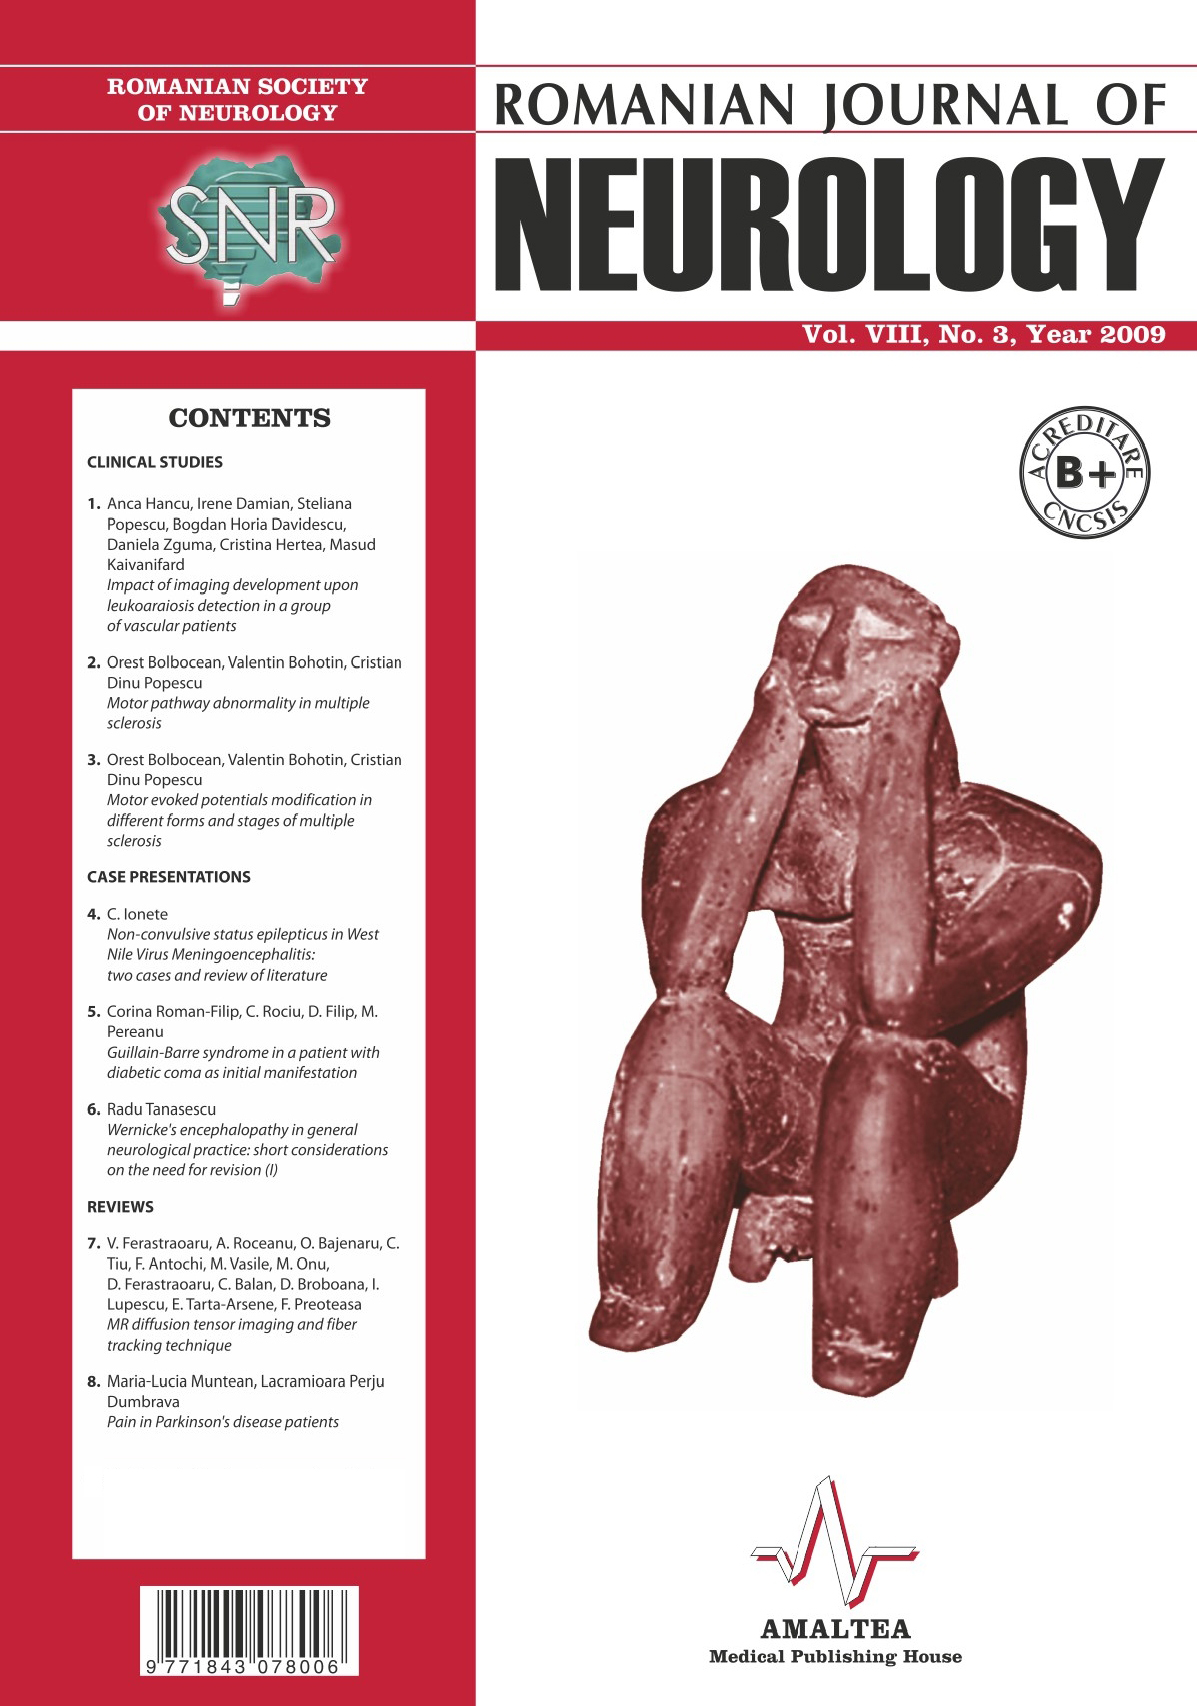 Romanian Journal of Neurology, Volume VIII, No. 3, 2009